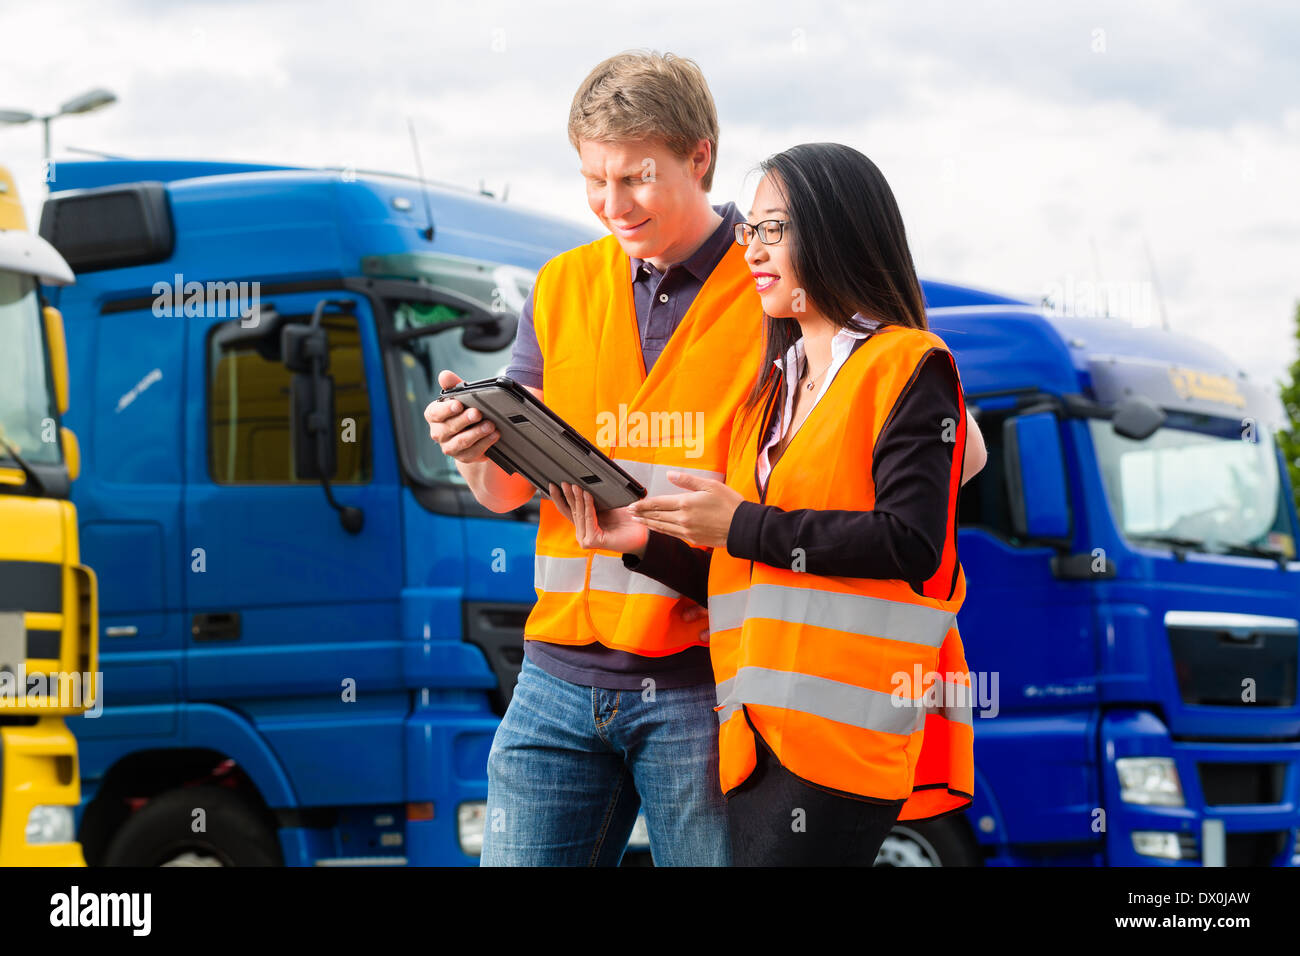 Logistics - proud driver or forwarder and female coworker with tablet computer, in front of trucks and trailers - Stock Image